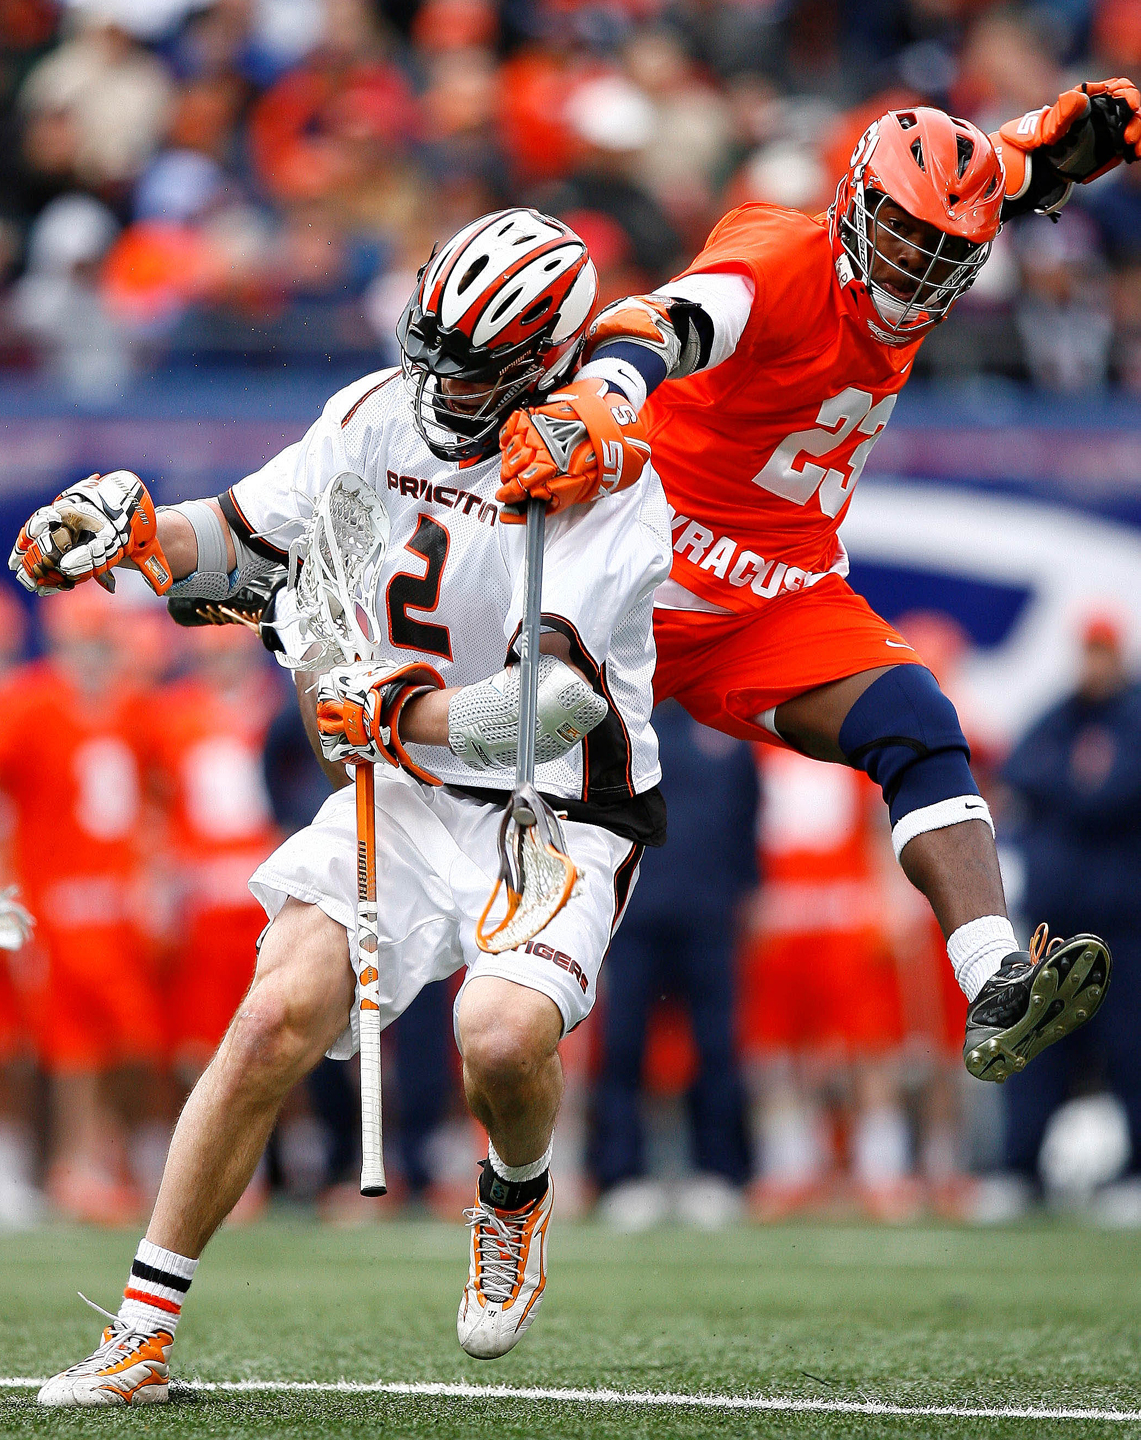 Princeton Tigers attacker Scott Mackenzie (2) brings the ball up field during second half action against Syracuse Orange midfielder Jovan Miller (23) at the Big City Classic in Giants Stadium.